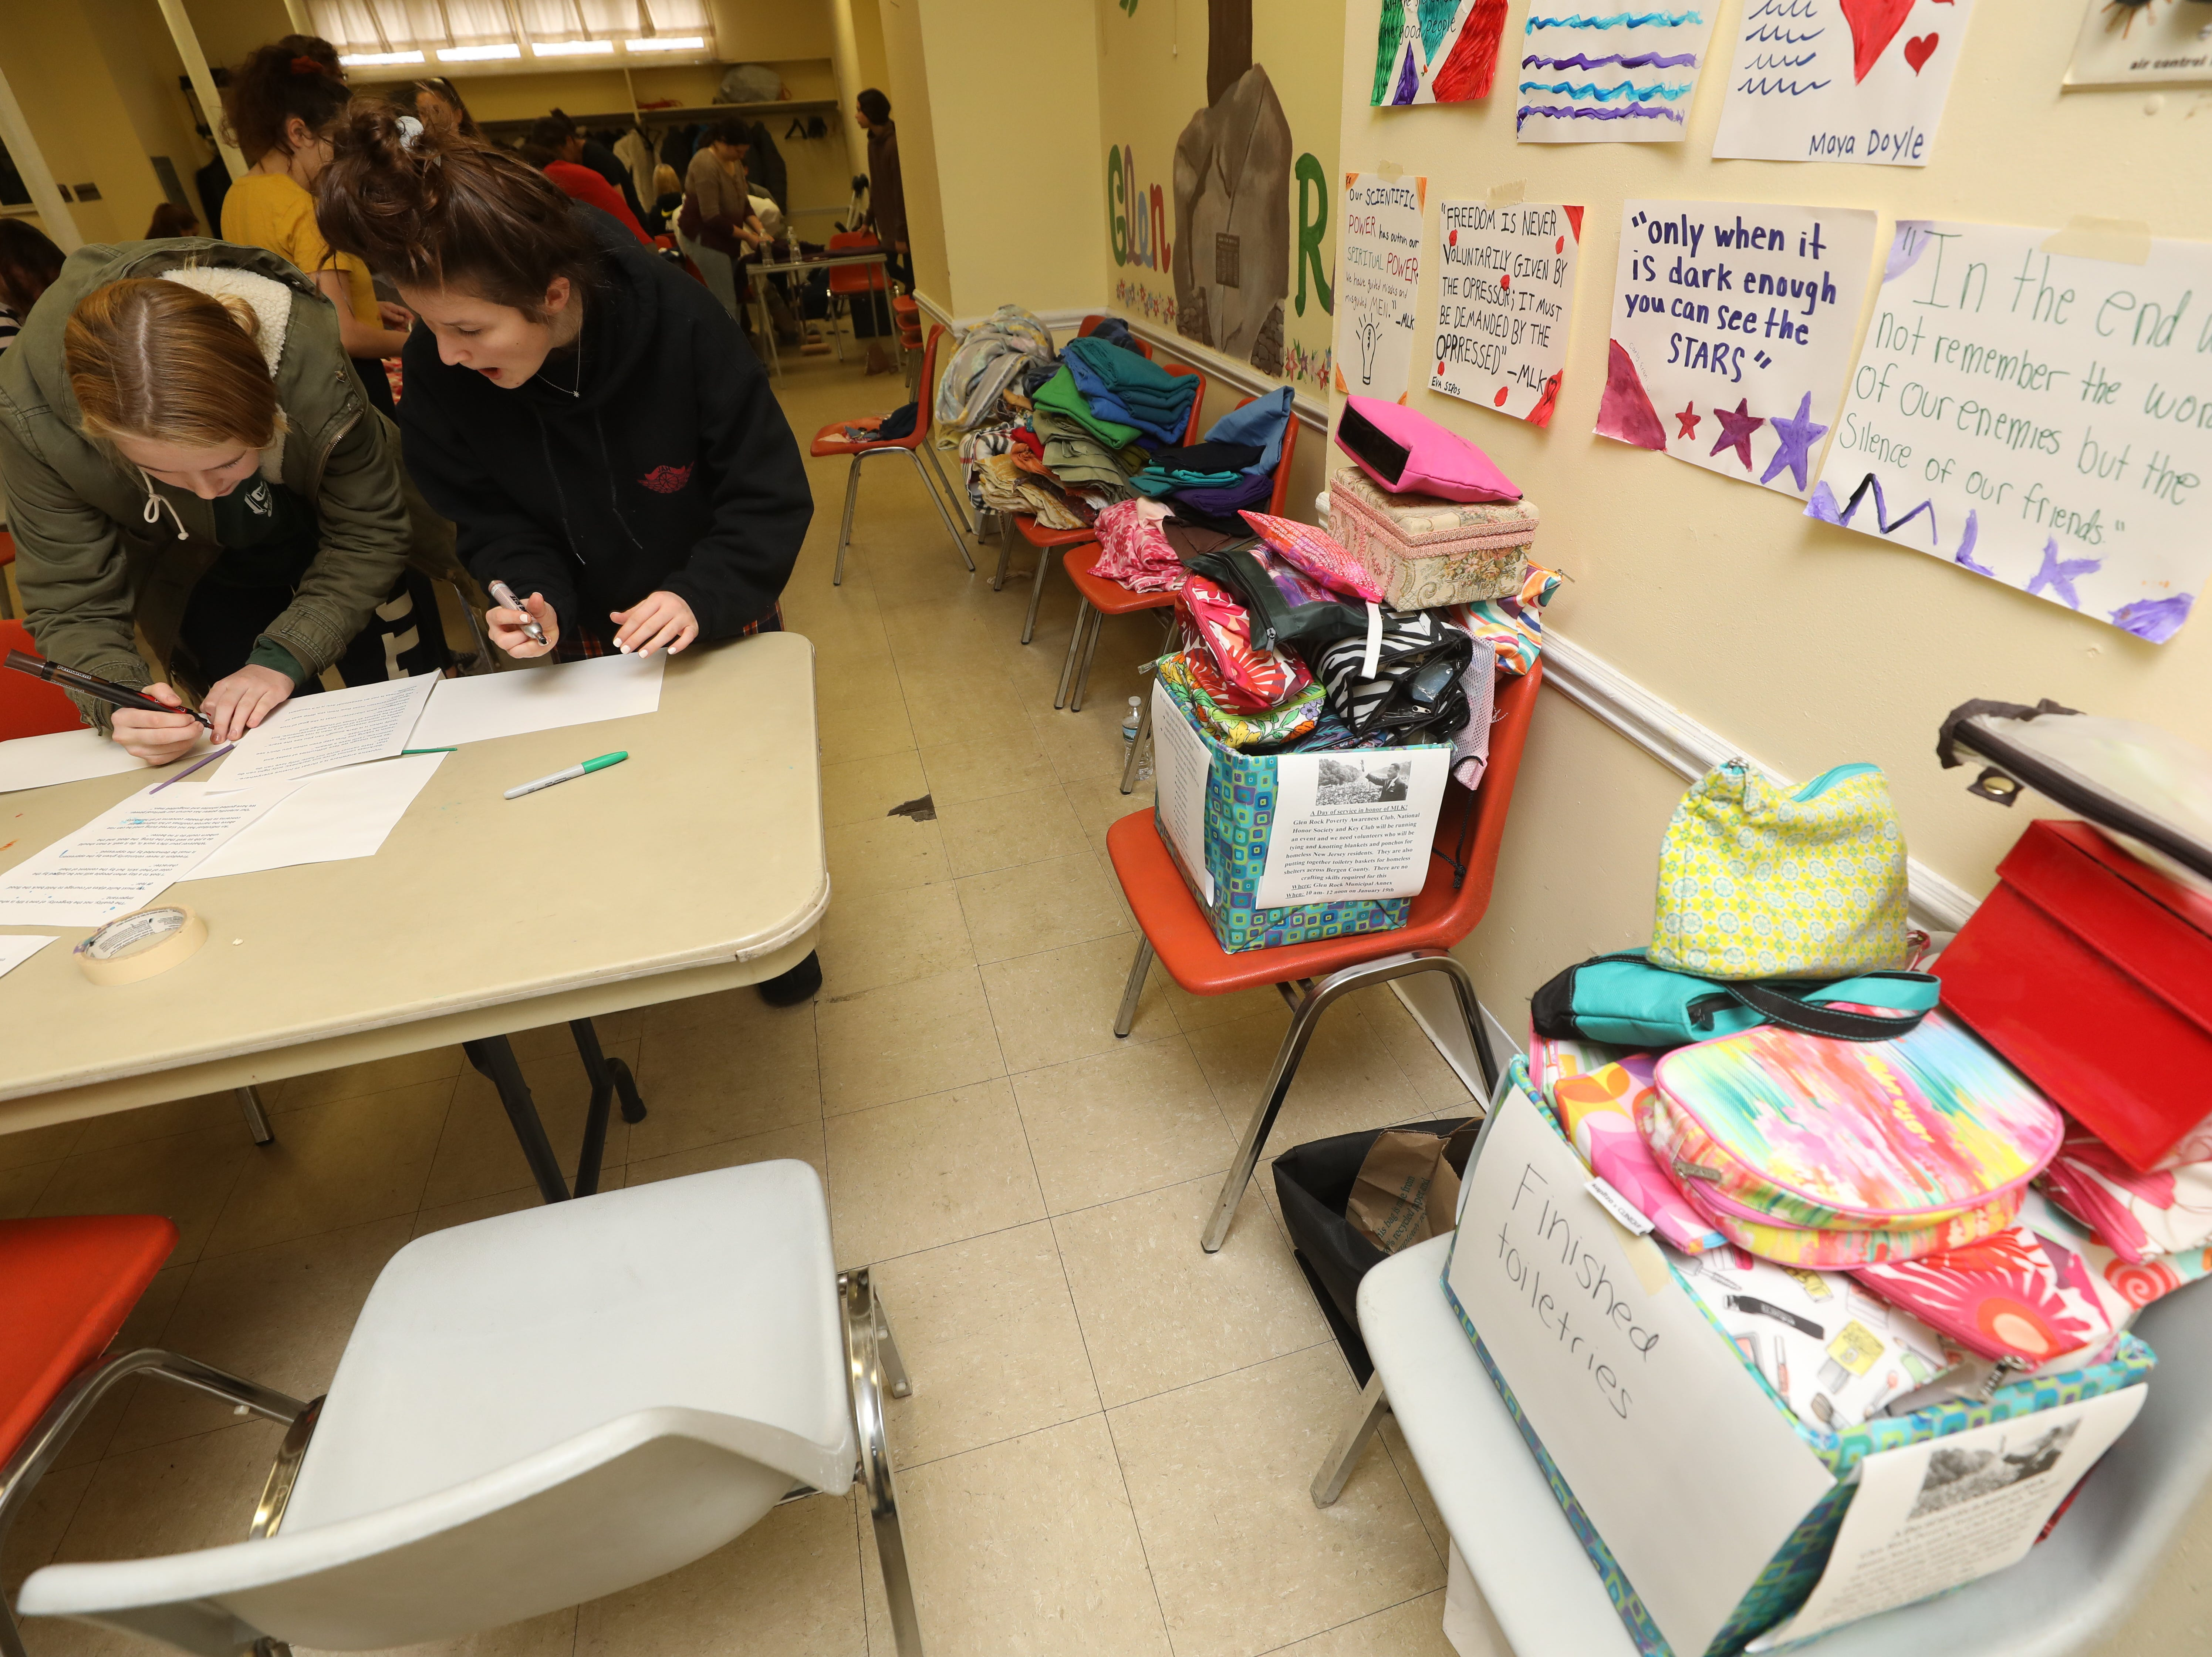 Quotes from Dr. Martin Luther King, cloth items such as toiletry cases are part of a Day of Service at the Glen Rock Annex on January 19, 2019 in recognition of Martin Luther King Day.